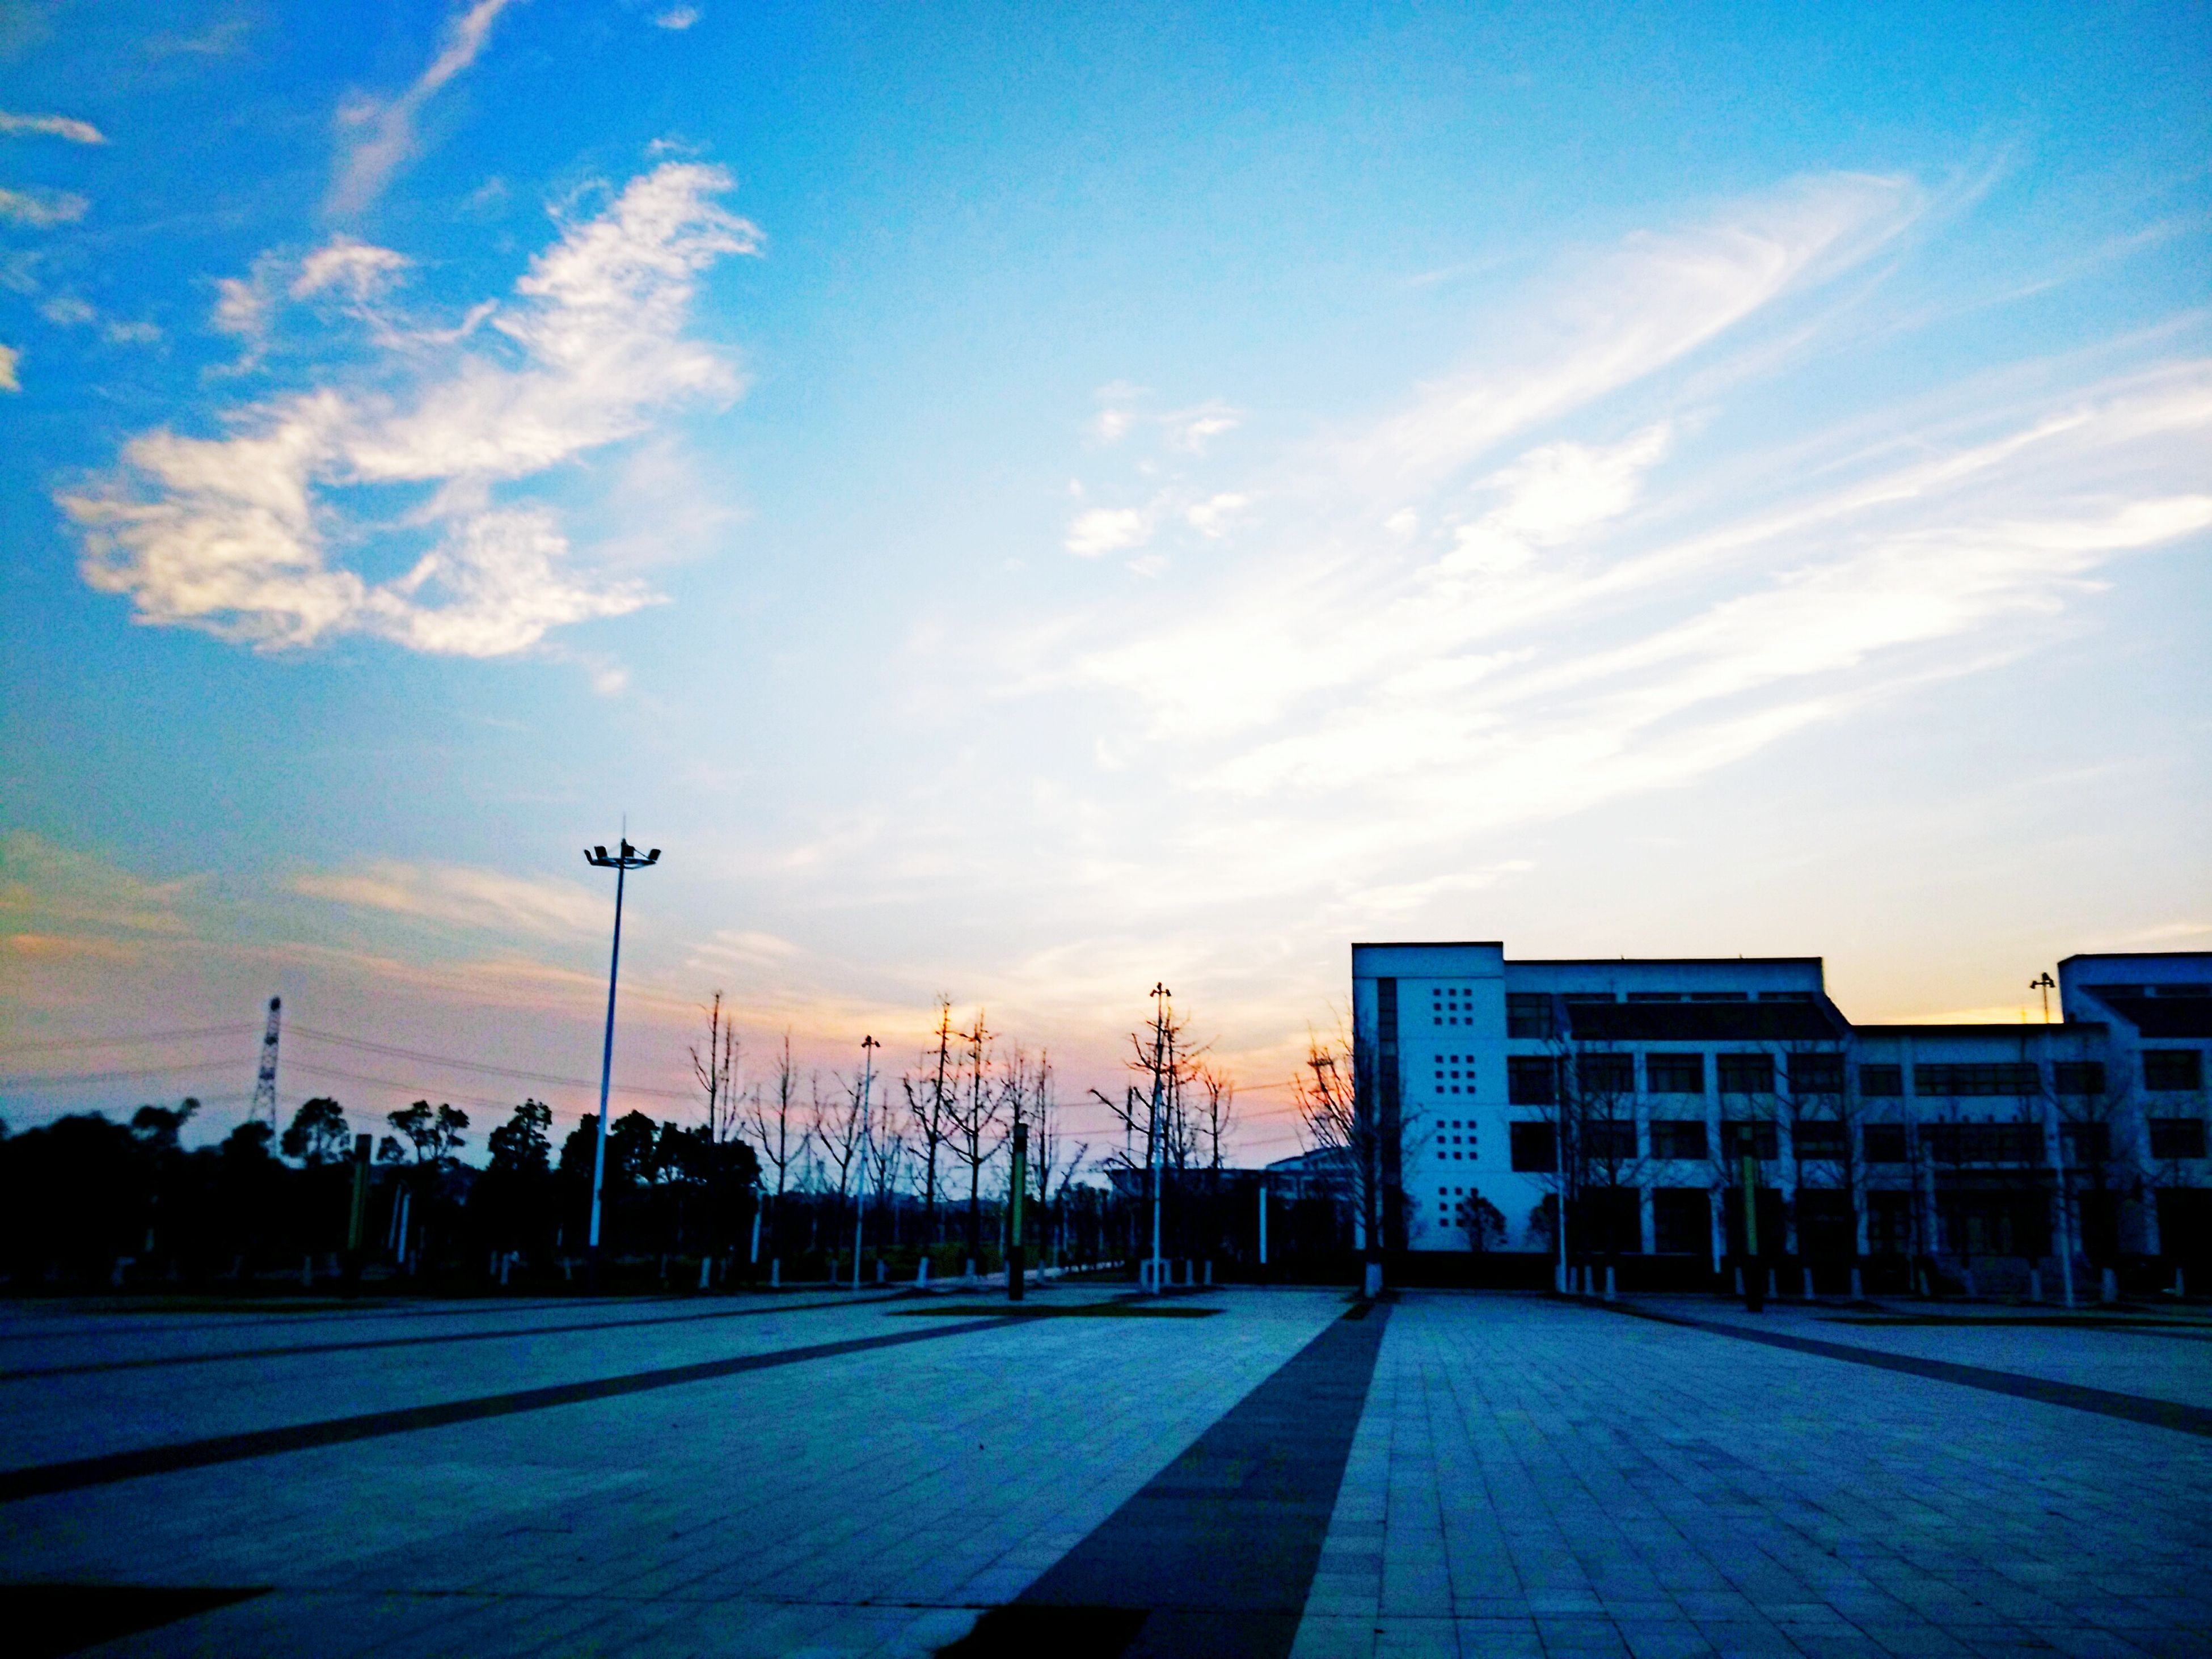 sky, cloud - sky, sunlight, outdoors, built structure, city, building exterior, architecture, no people, day